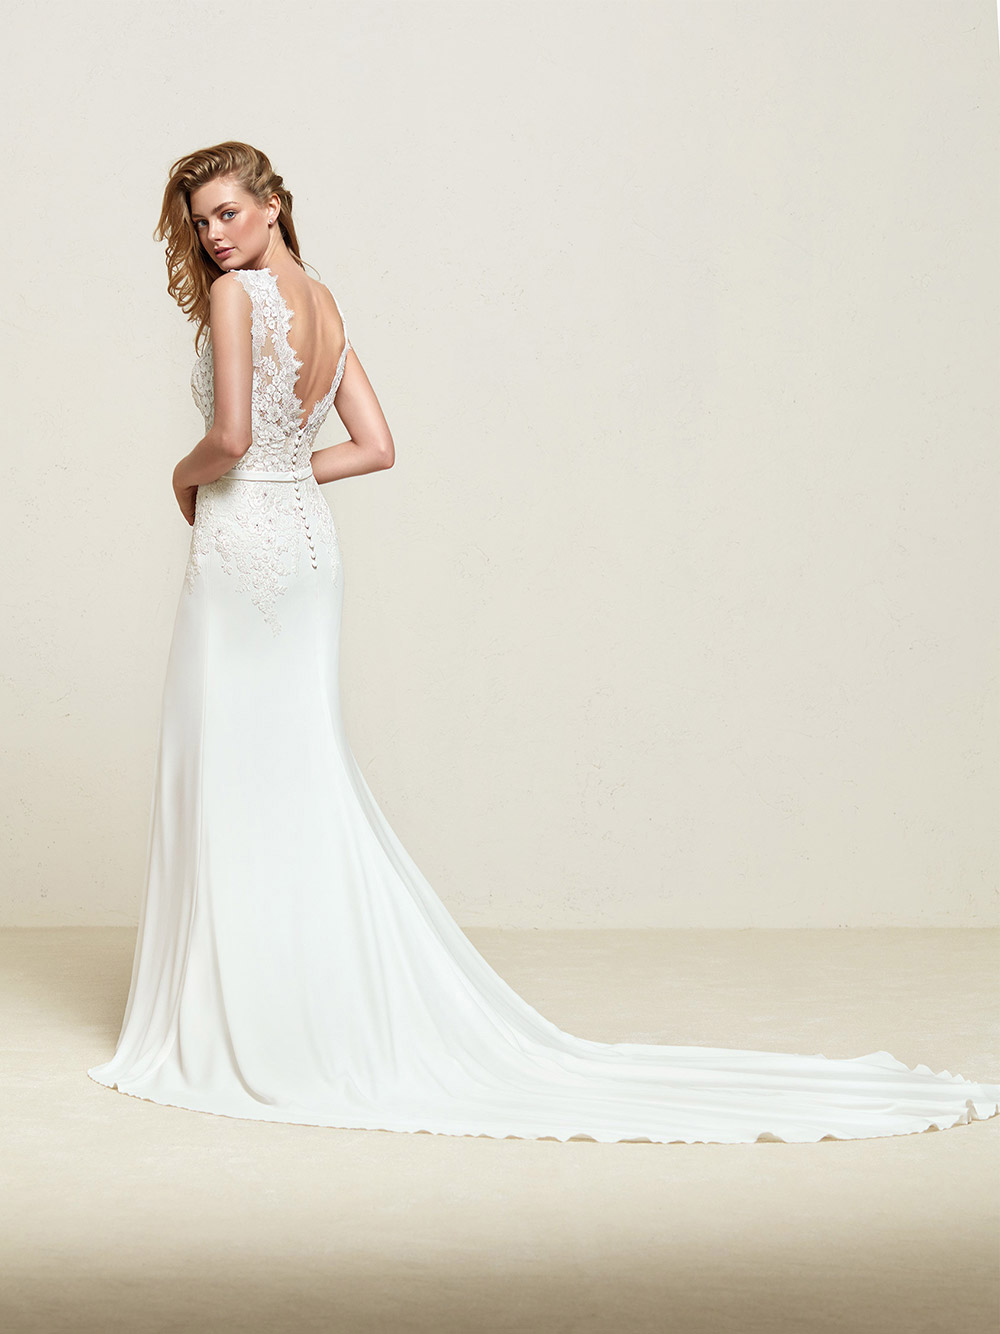 Drenina - Pronovias 2018 Bridal Collection. www.theweddingnotebook.com